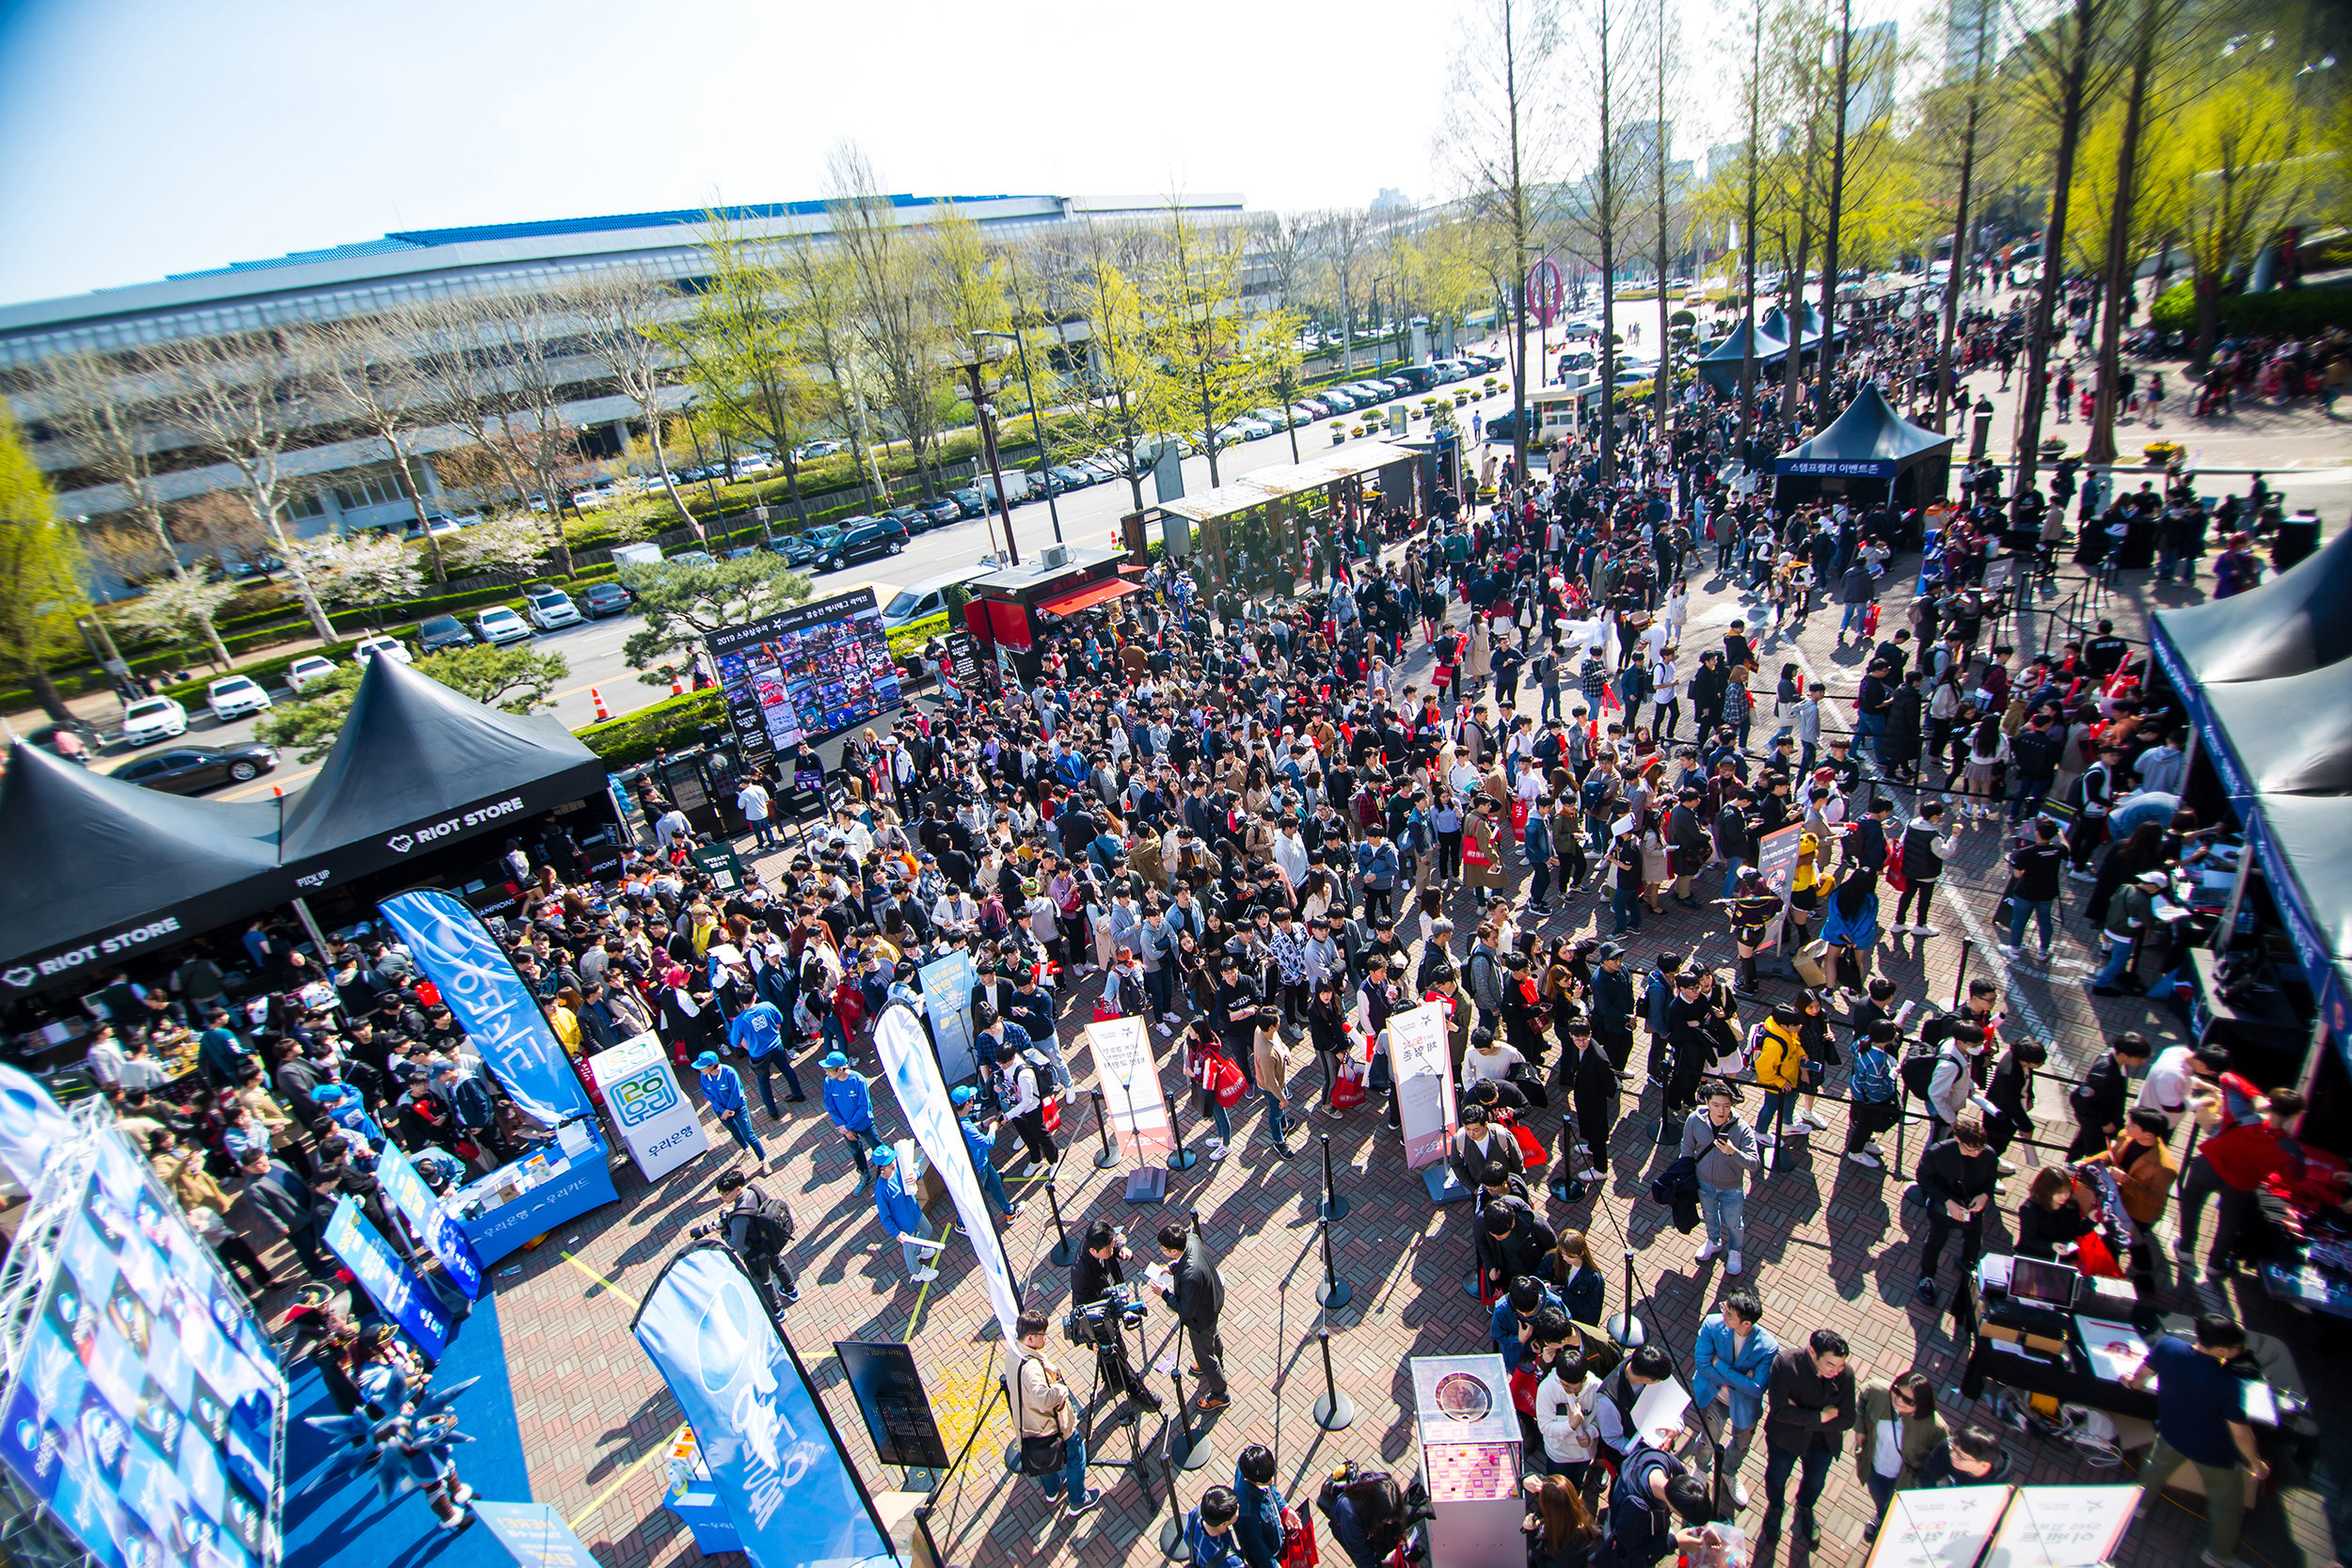 SEOUL, SOUTH KOREA - APRIL 13: Fans line up outside to watch SK Telecom T1 (wins 3-0) vs Griffin at LCK Spring Finals at Jamsil Sports Center on April 13, 2019 in Seoul, Korea. Photo by Timo Verdeil/ESPAT Media